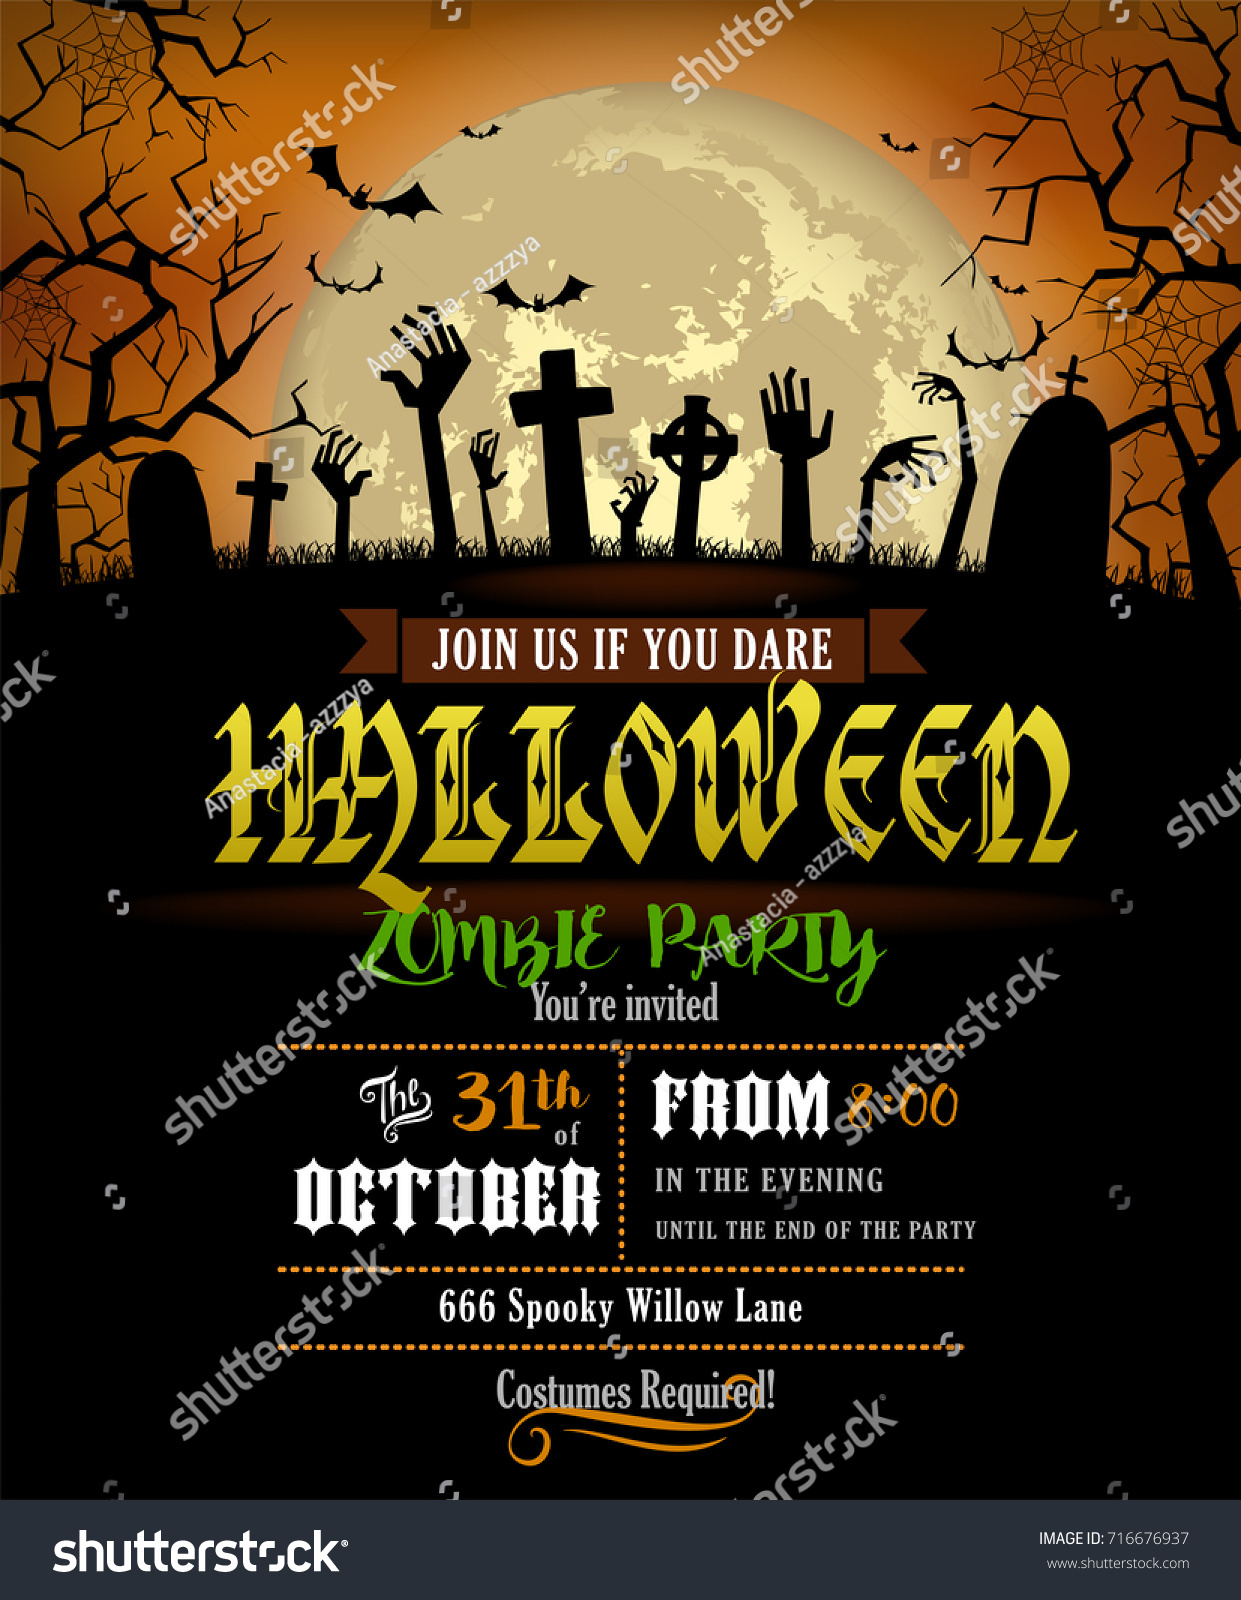 Halloween party invitation poster zombies party em vetor stock halloween party invitation poster zombies party em vetor stock 716676937 shutterstock stopboris Gallery